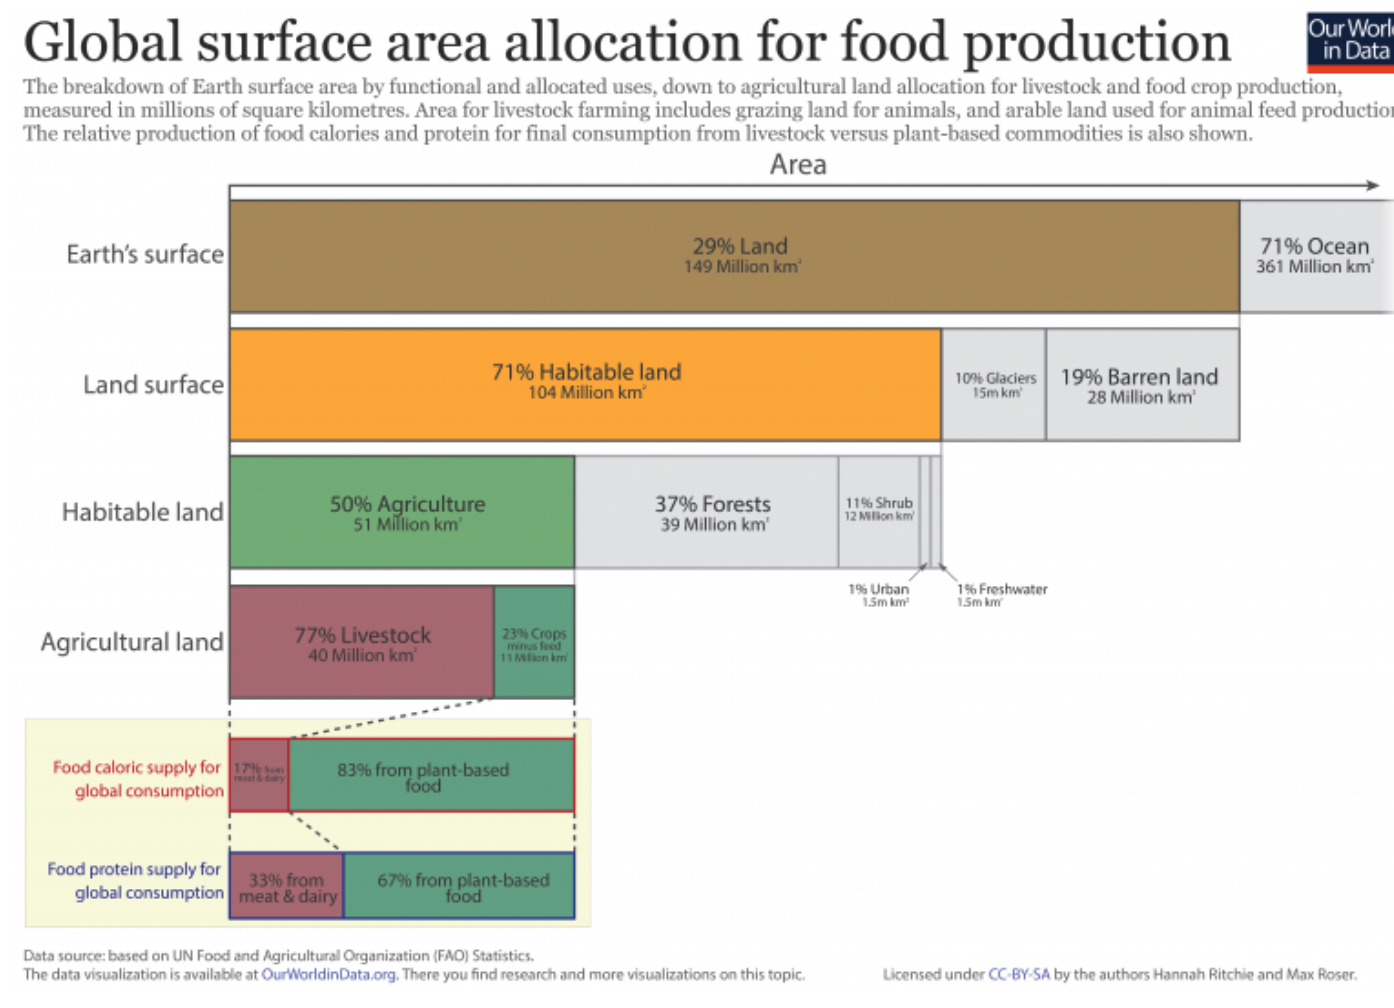 Global surface area allocation for food production, The Adaptive Economy, Djoann Fal